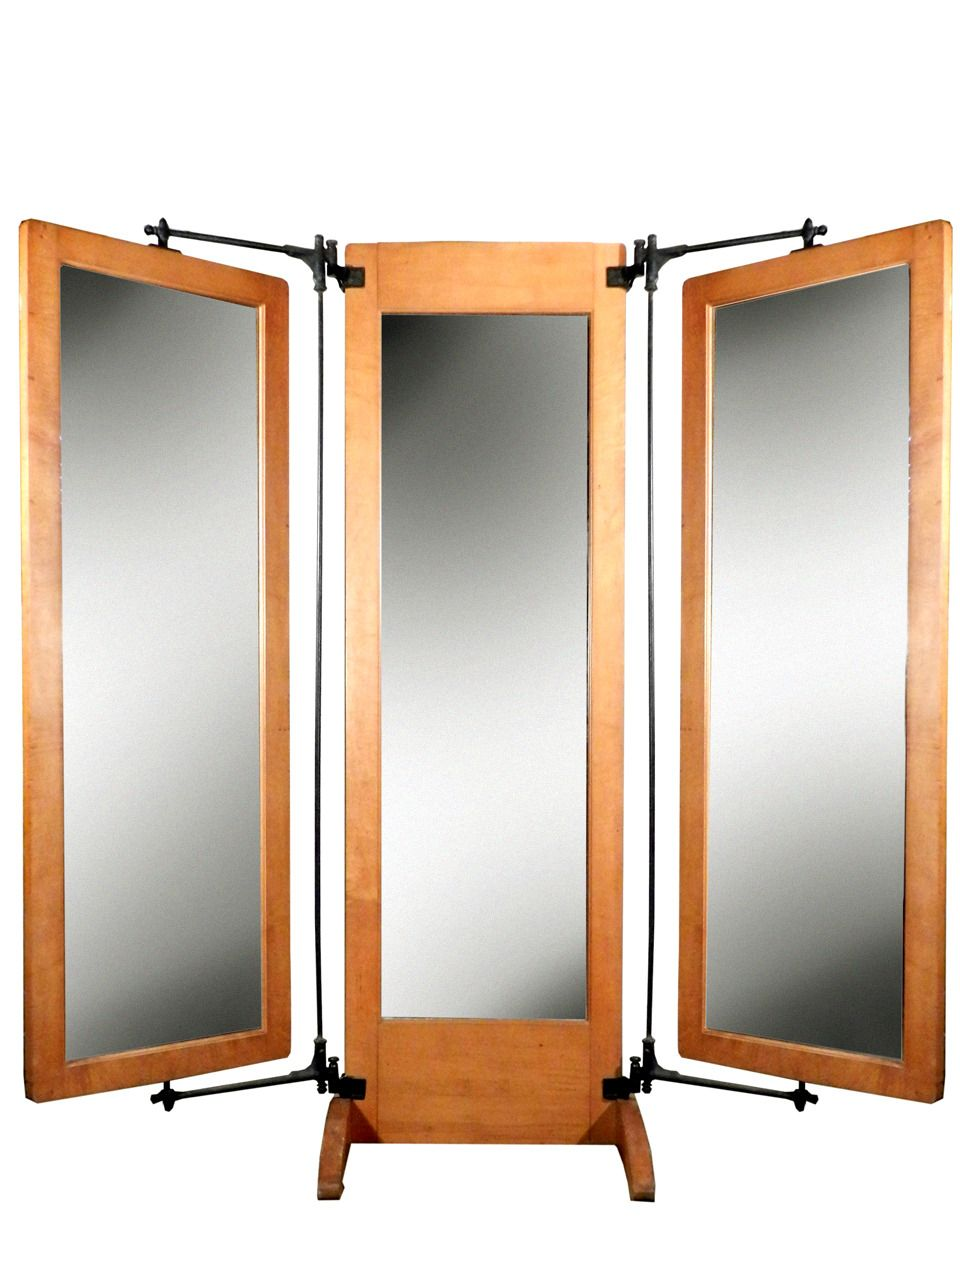 1930 tailors triple dressing mirror mirror dressing mirror mirror floor mirror. Black Bedroom Furniture Sets. Home Design Ideas